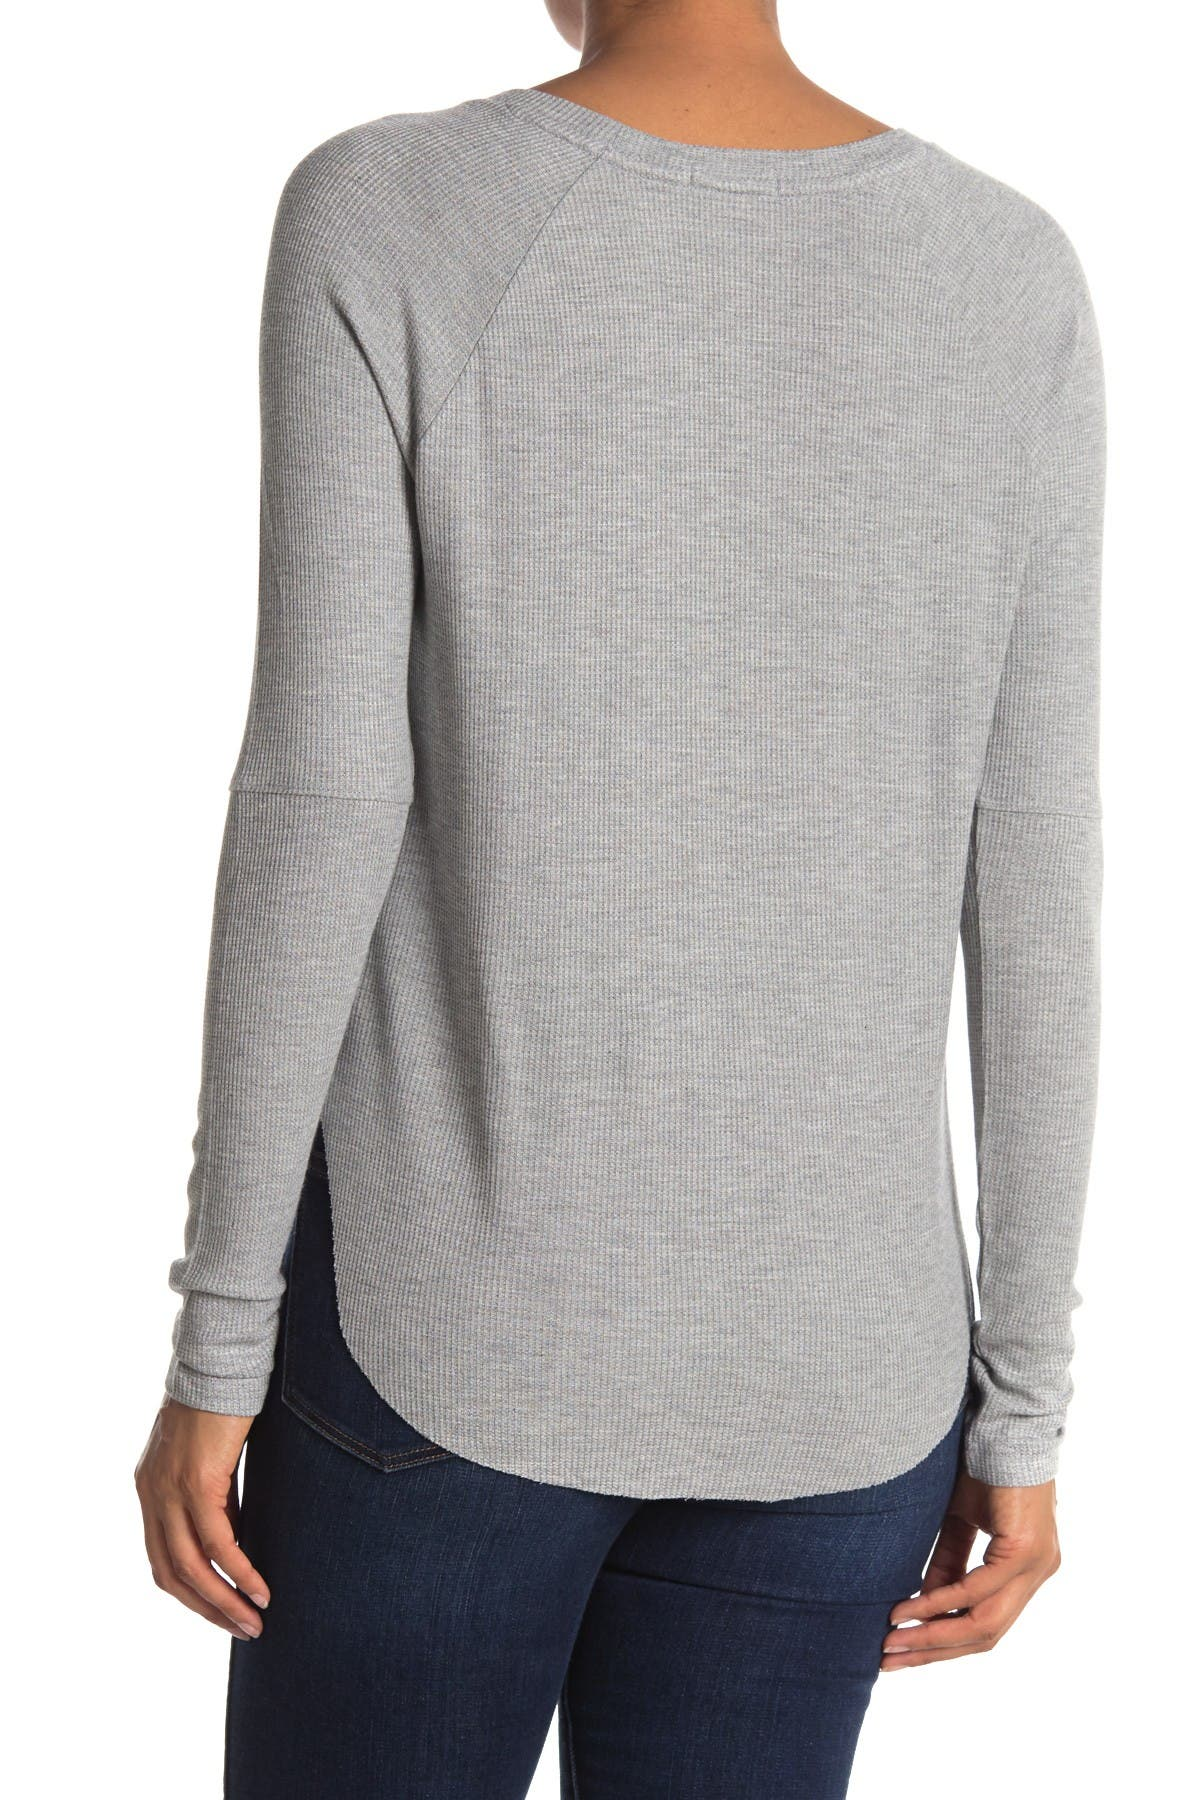 Image of Abound Long Sleeve Raglan Tee